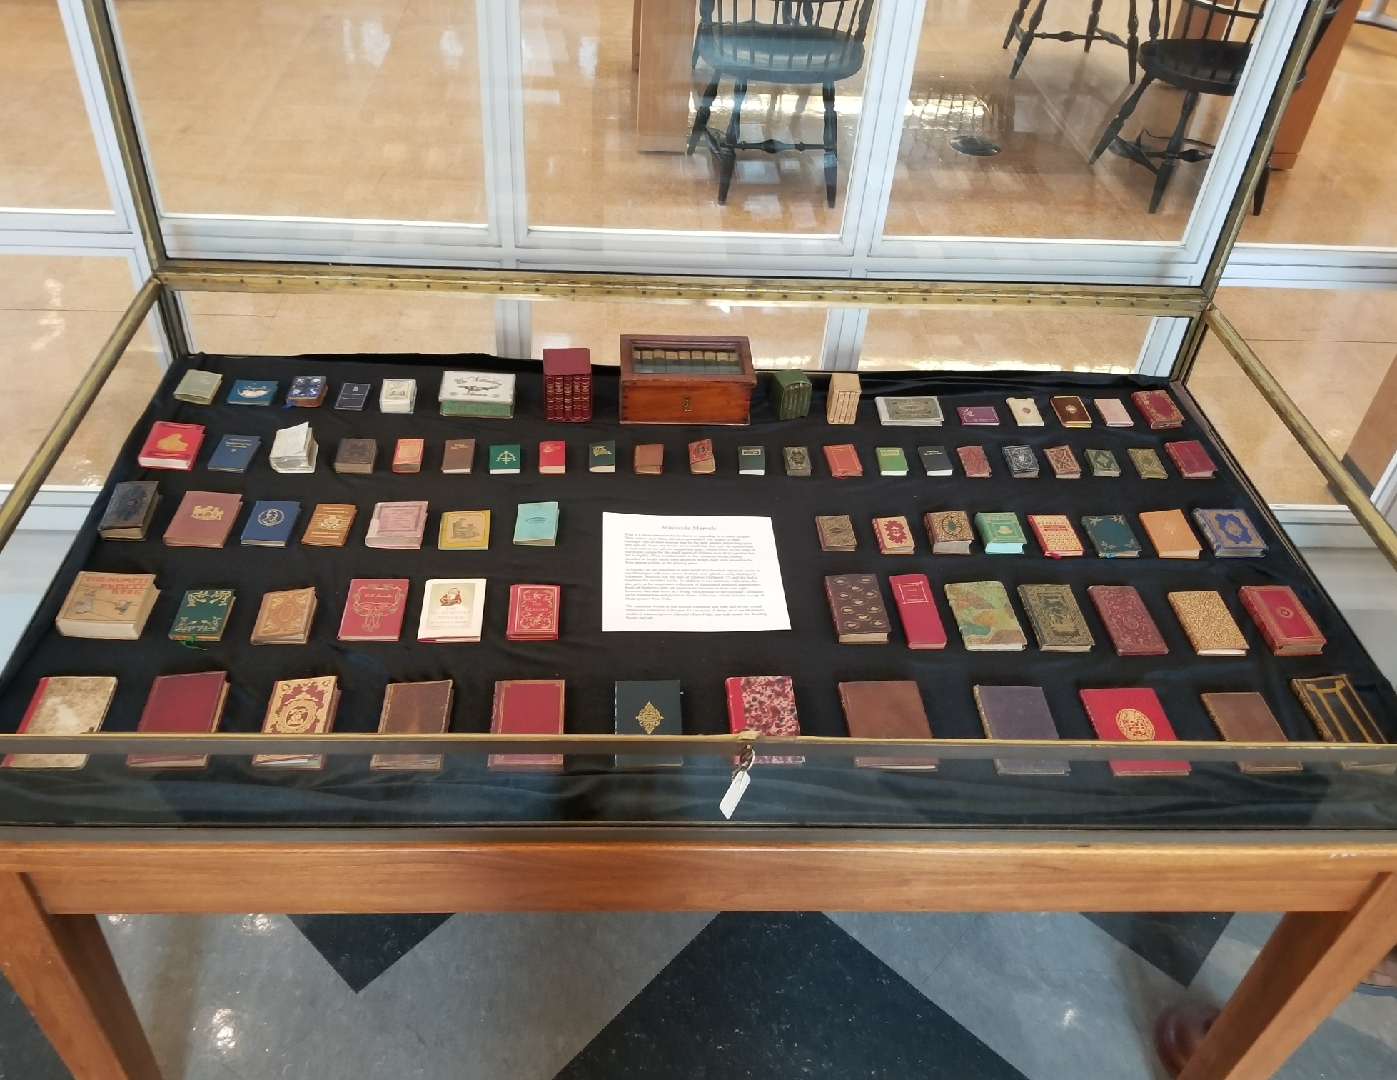 Rauner Special Collections Library: Tiny Treasures